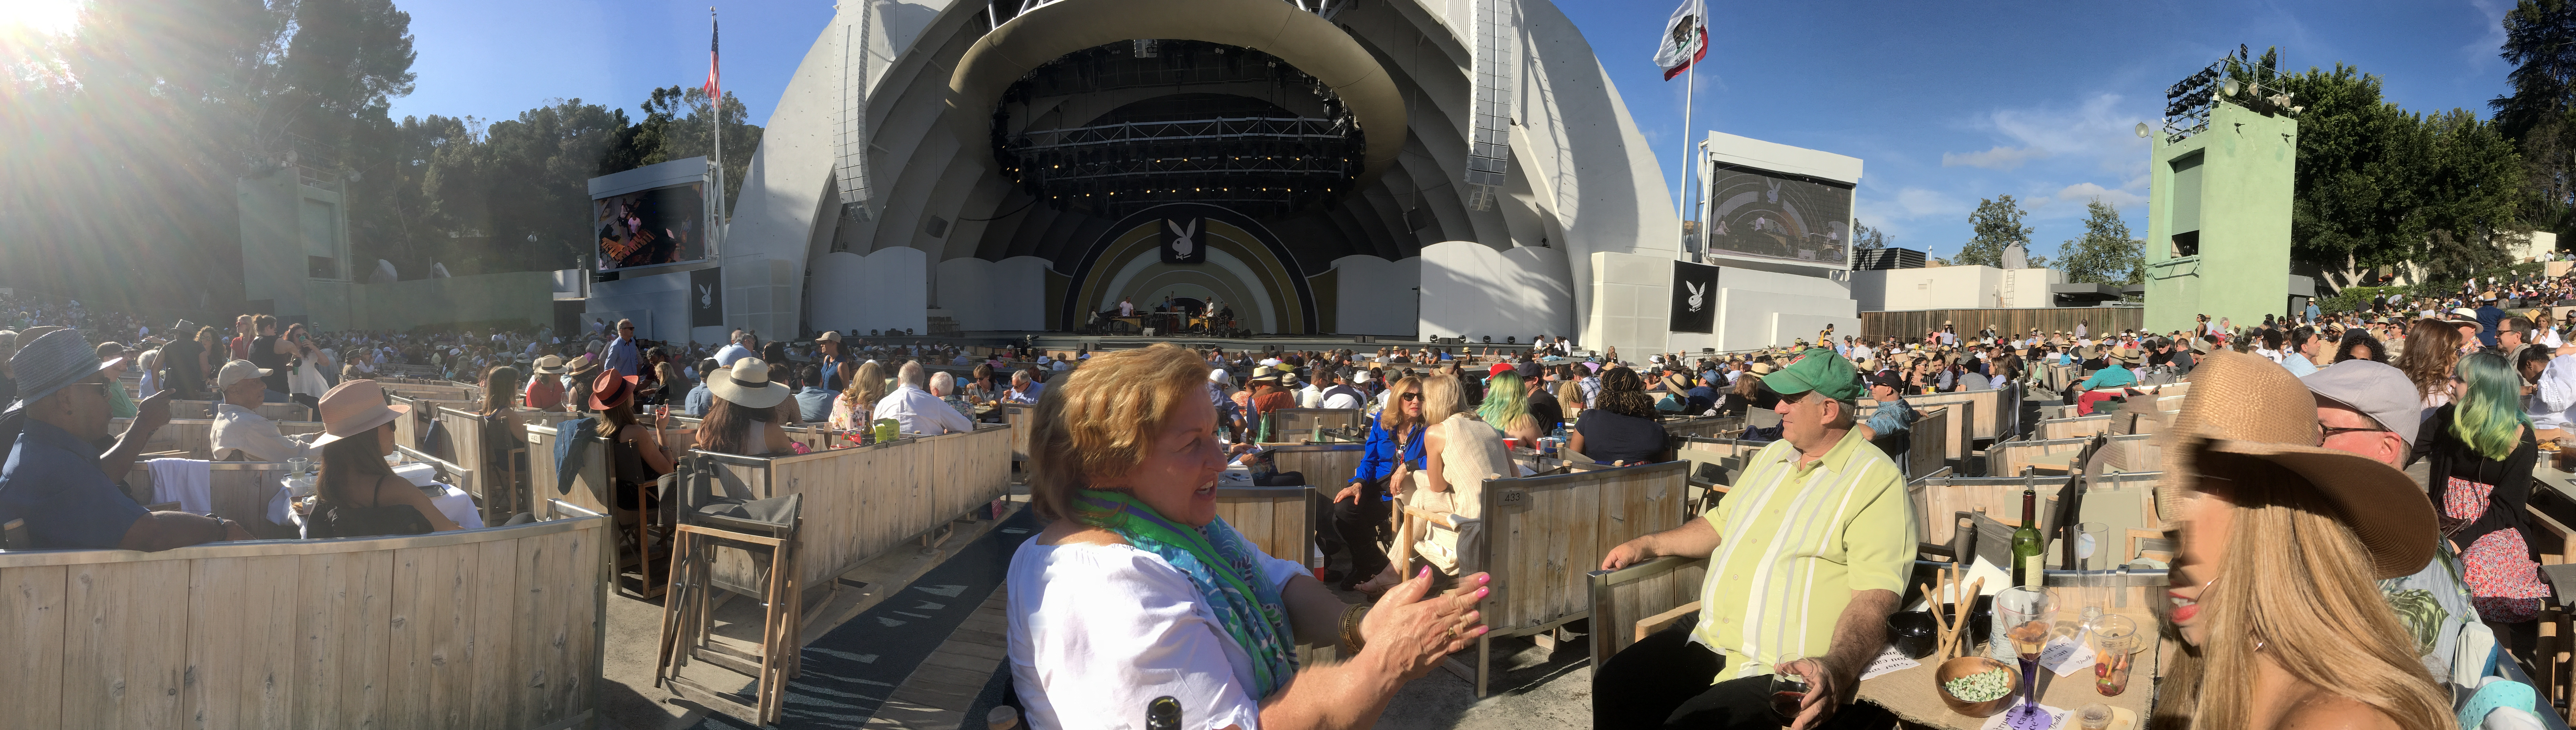 Playboy Jazz Festival 2017 at the Hollywood Bowl